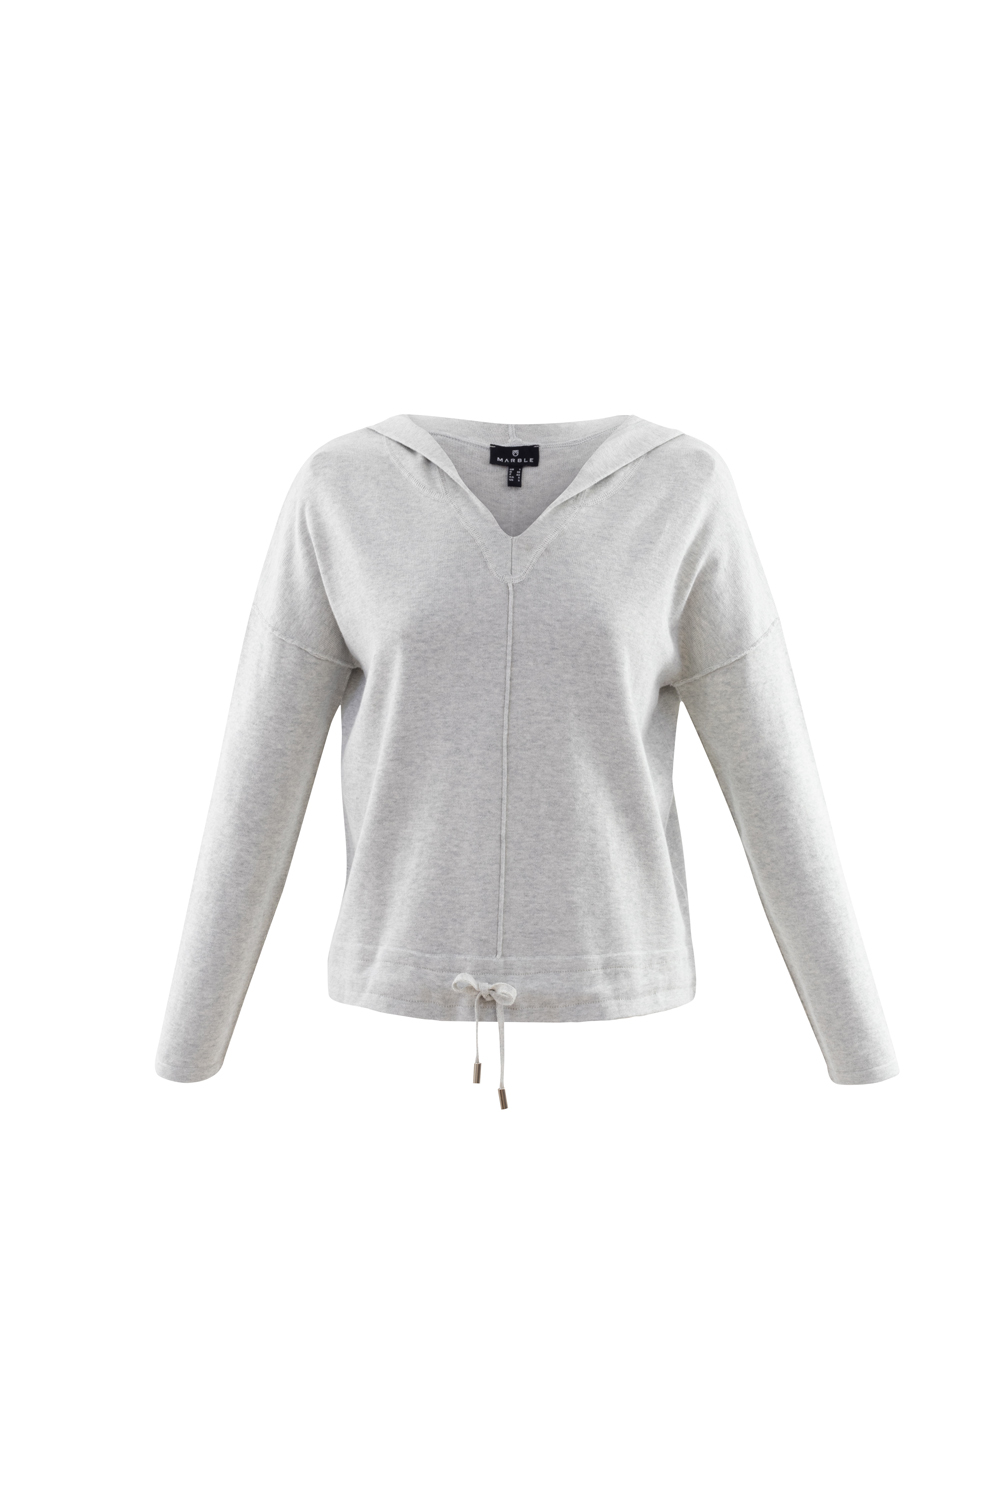 MARBLE Silver Grey Cotton Knit Hoodie